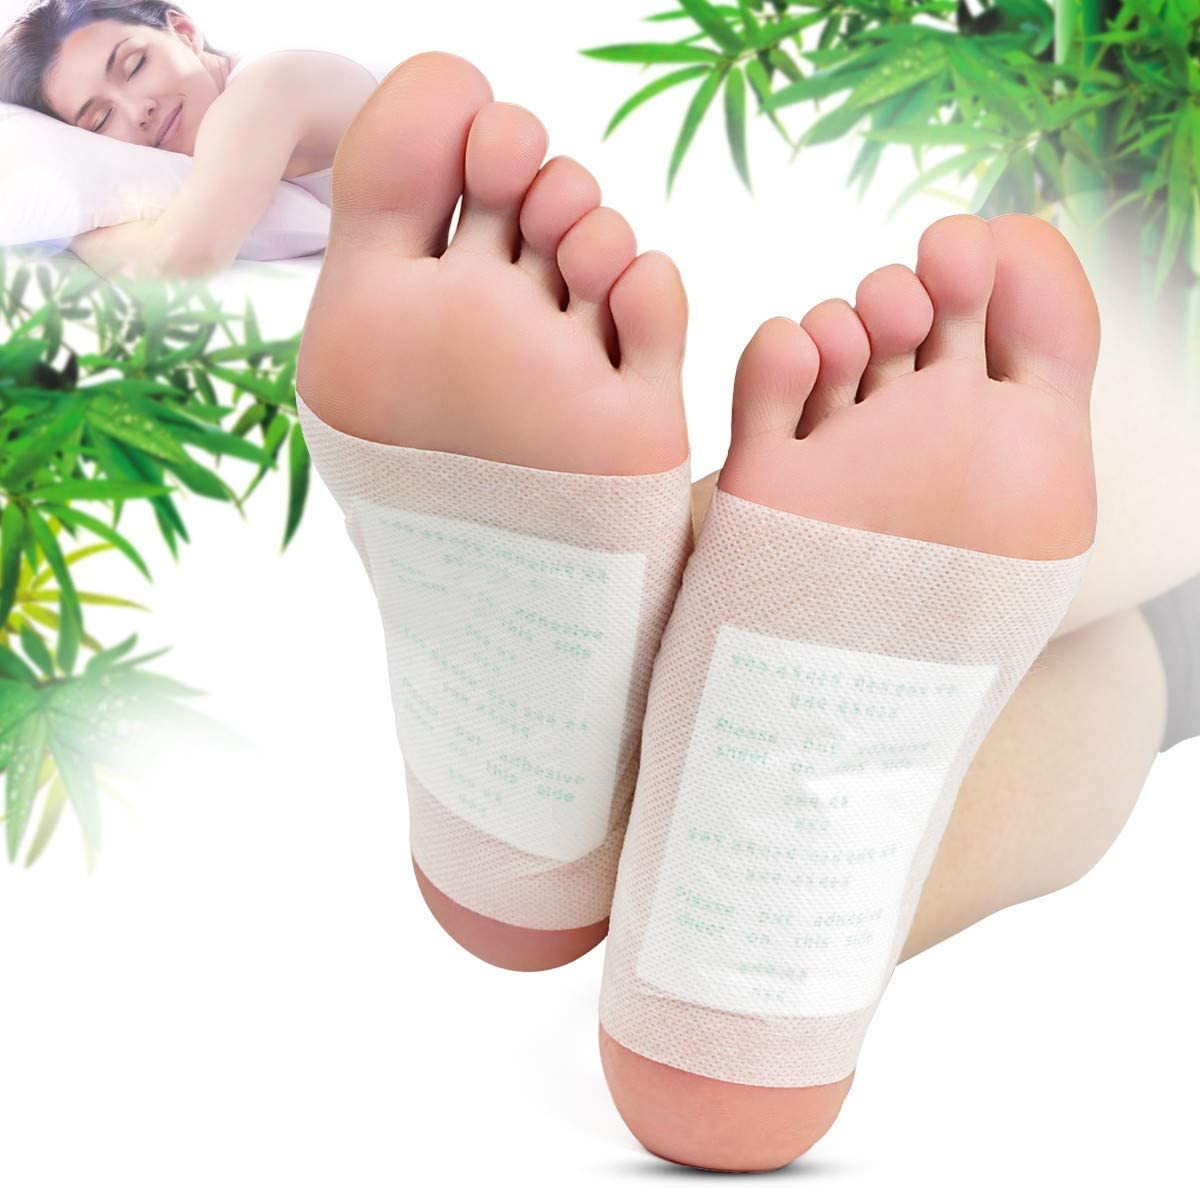 Foot Pads - (100pcs) Natural Cleansing Foot Pads for Foot Care, Sleeping & Anti-Stress Relief, No Stress Package - 100 Packs: Health & Personal Care